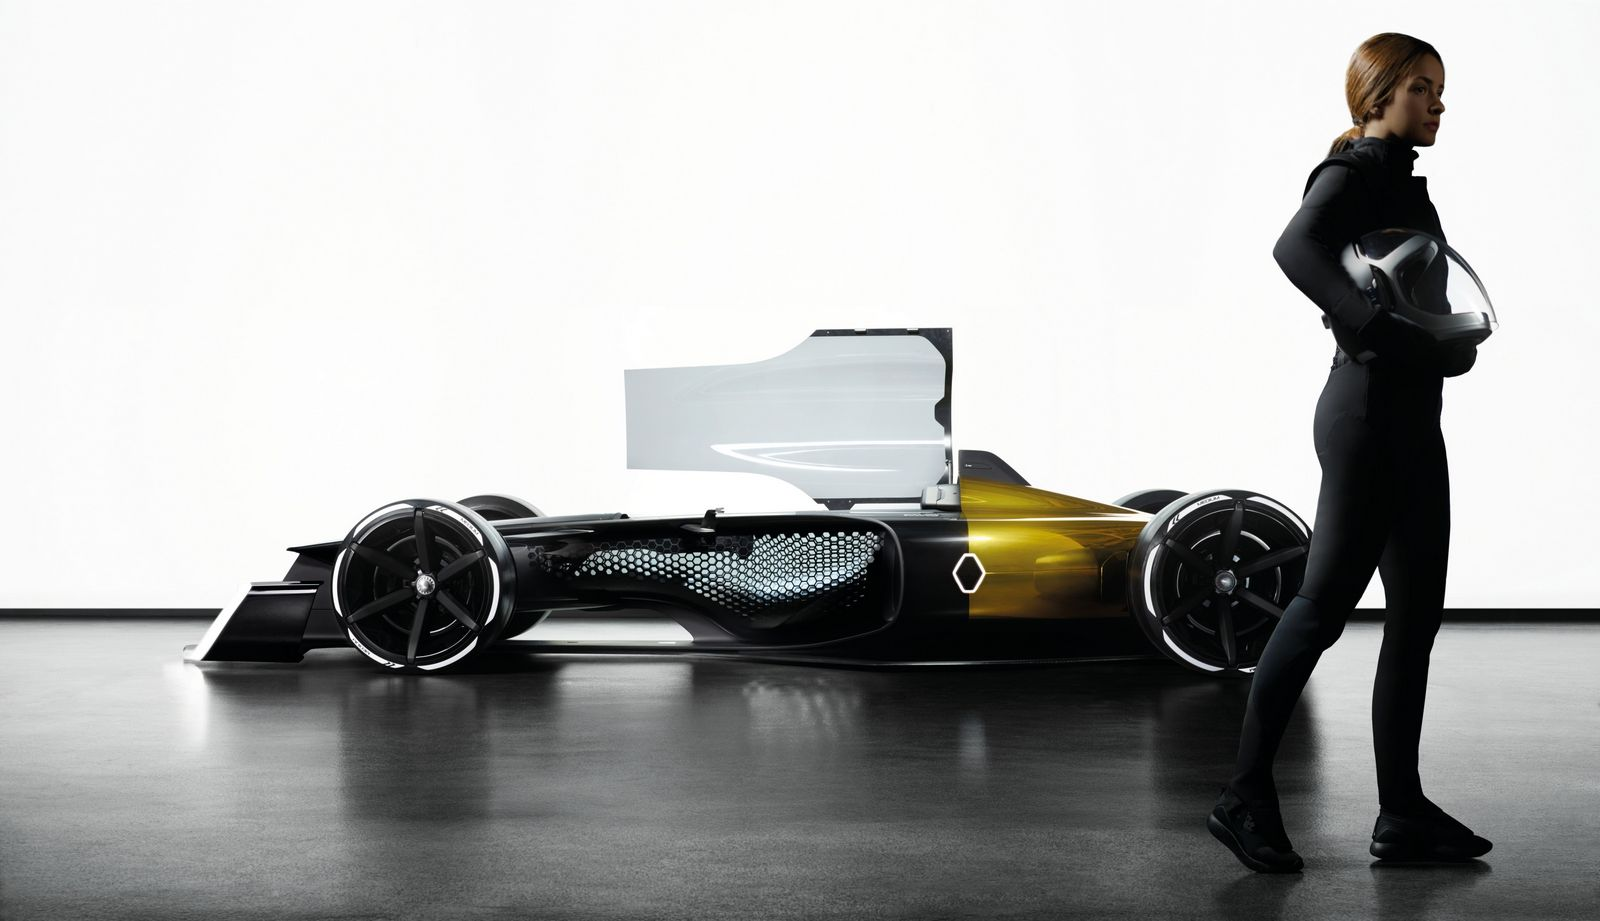 Renault RS 2027 Vision concept (6)